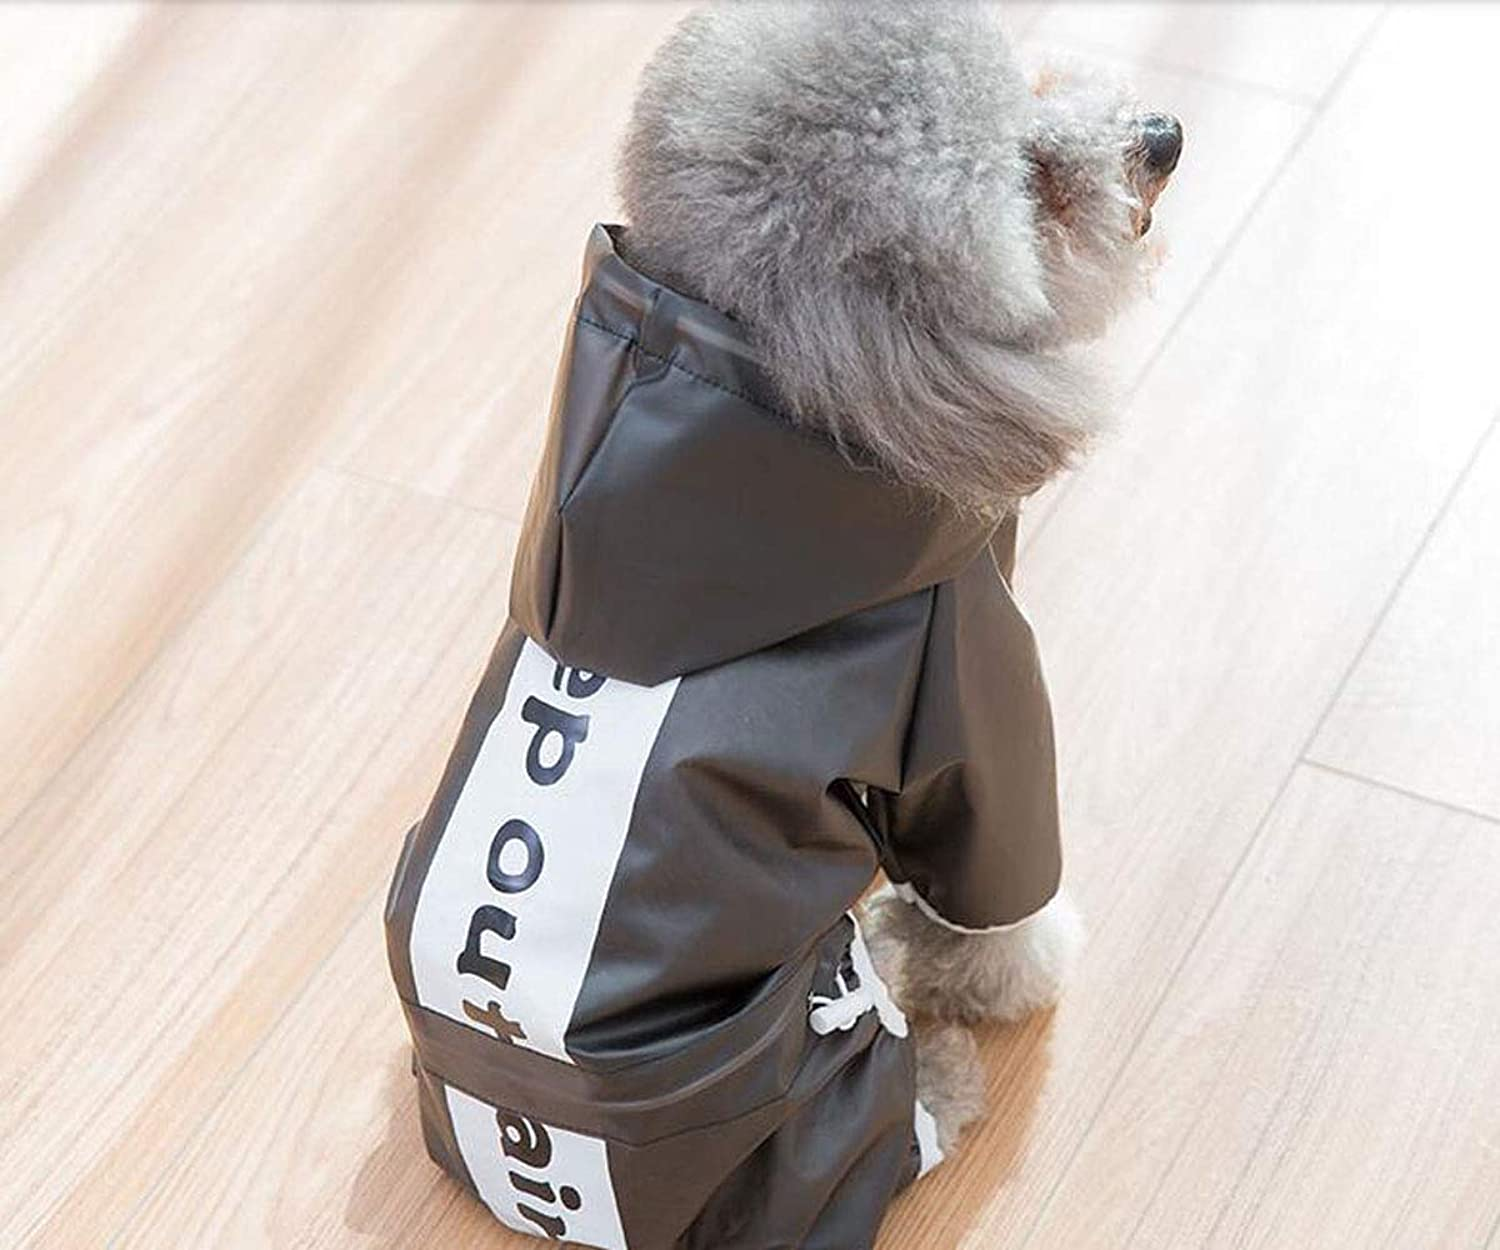 Hongyushanghang Dog Raincoat, Medium Size, Small Dog, Transparent Spring Thin Waterproof Jacket fine (color   Black, Size   M)